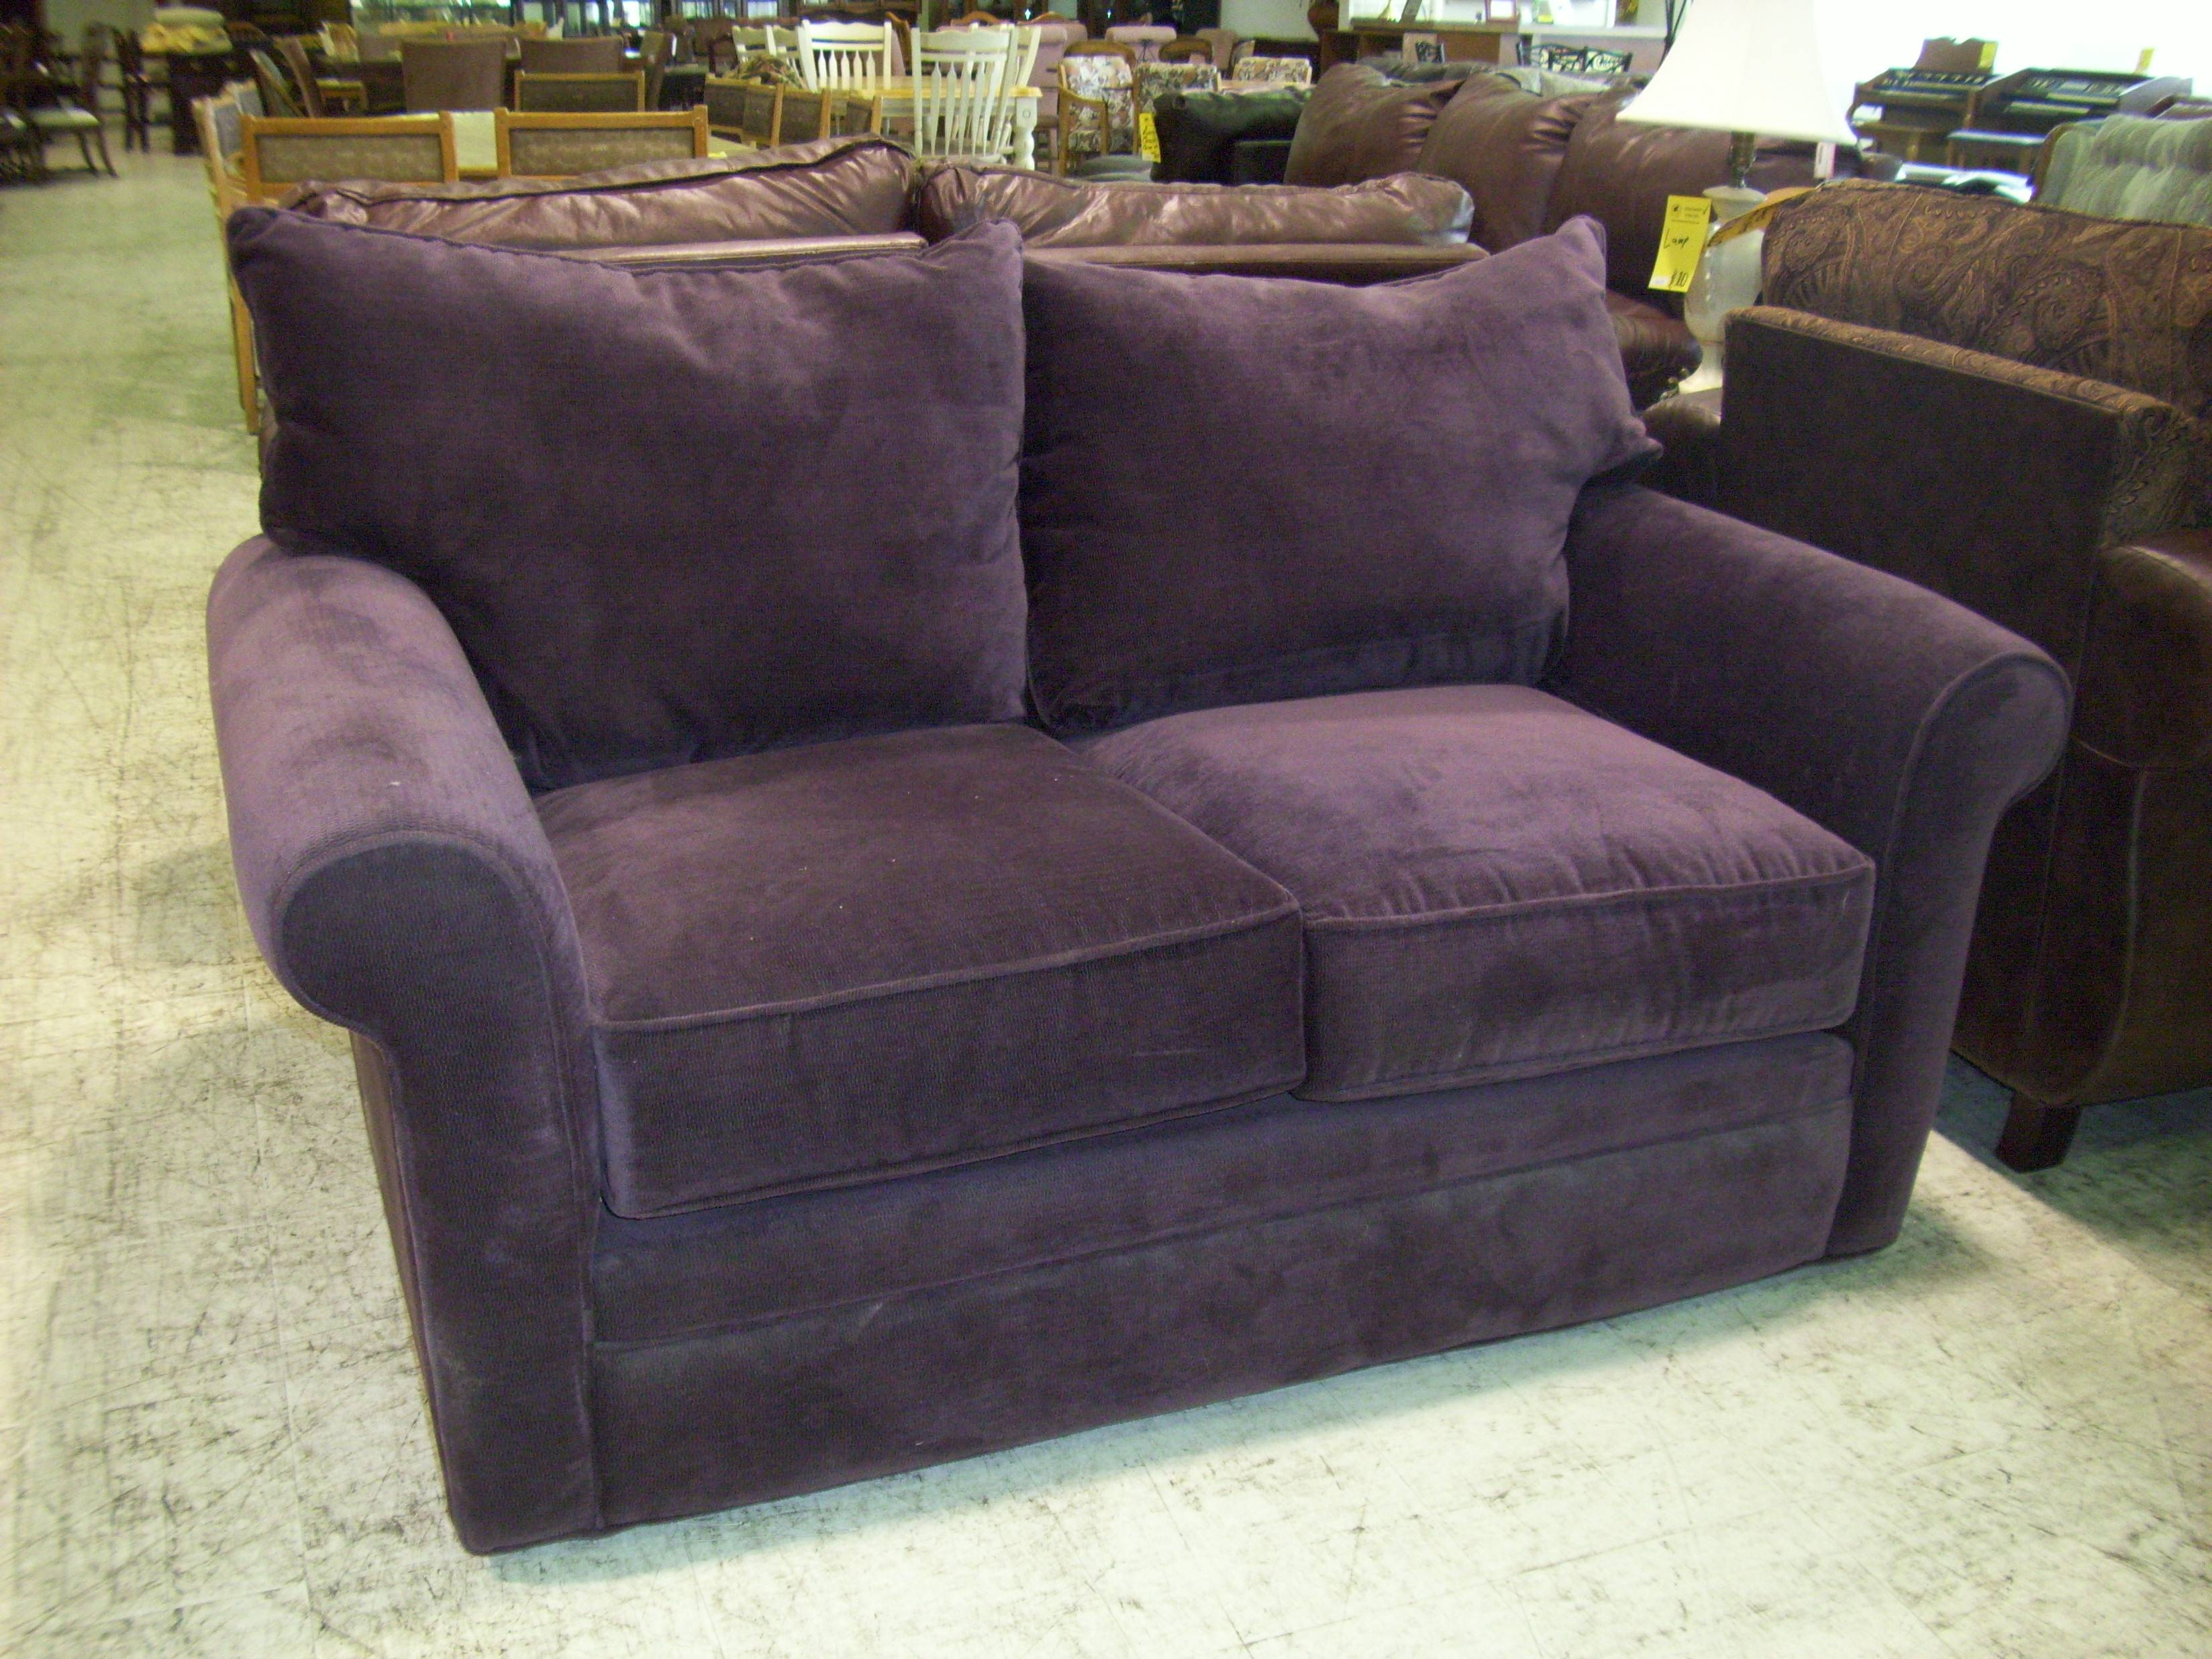 Modern Concept Alan White Sofa With Alan White Purple Sofa regarding Alan White Sofas (Image 13 of 15)